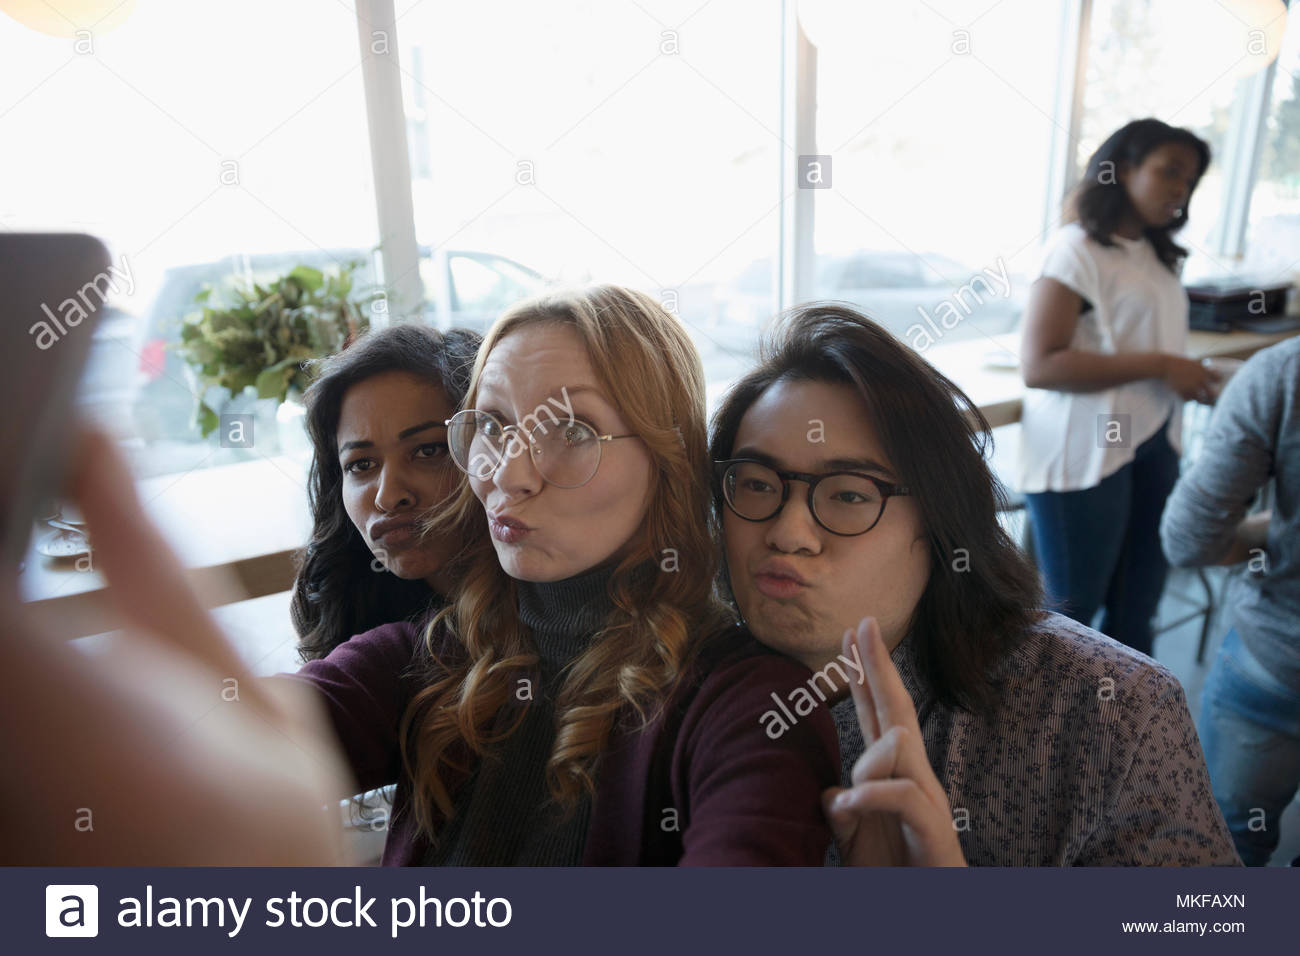 Playful, silly young friends making a face, posing for selfie - Stock Image